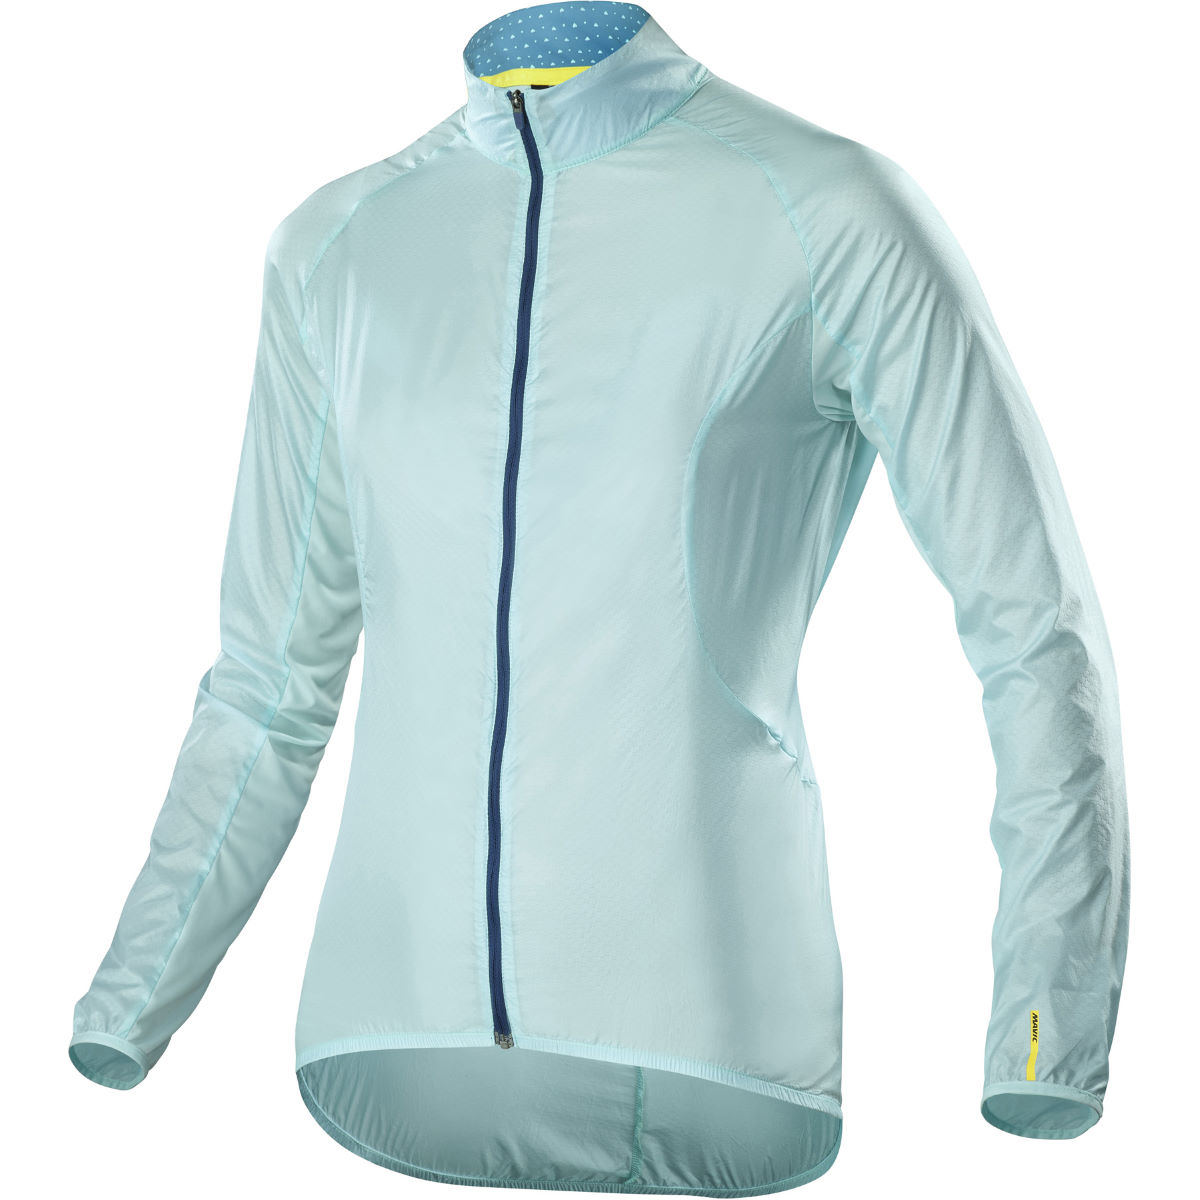 Veste Mavic Sequence Wind - XS Clear Water Coupe-vents vélo